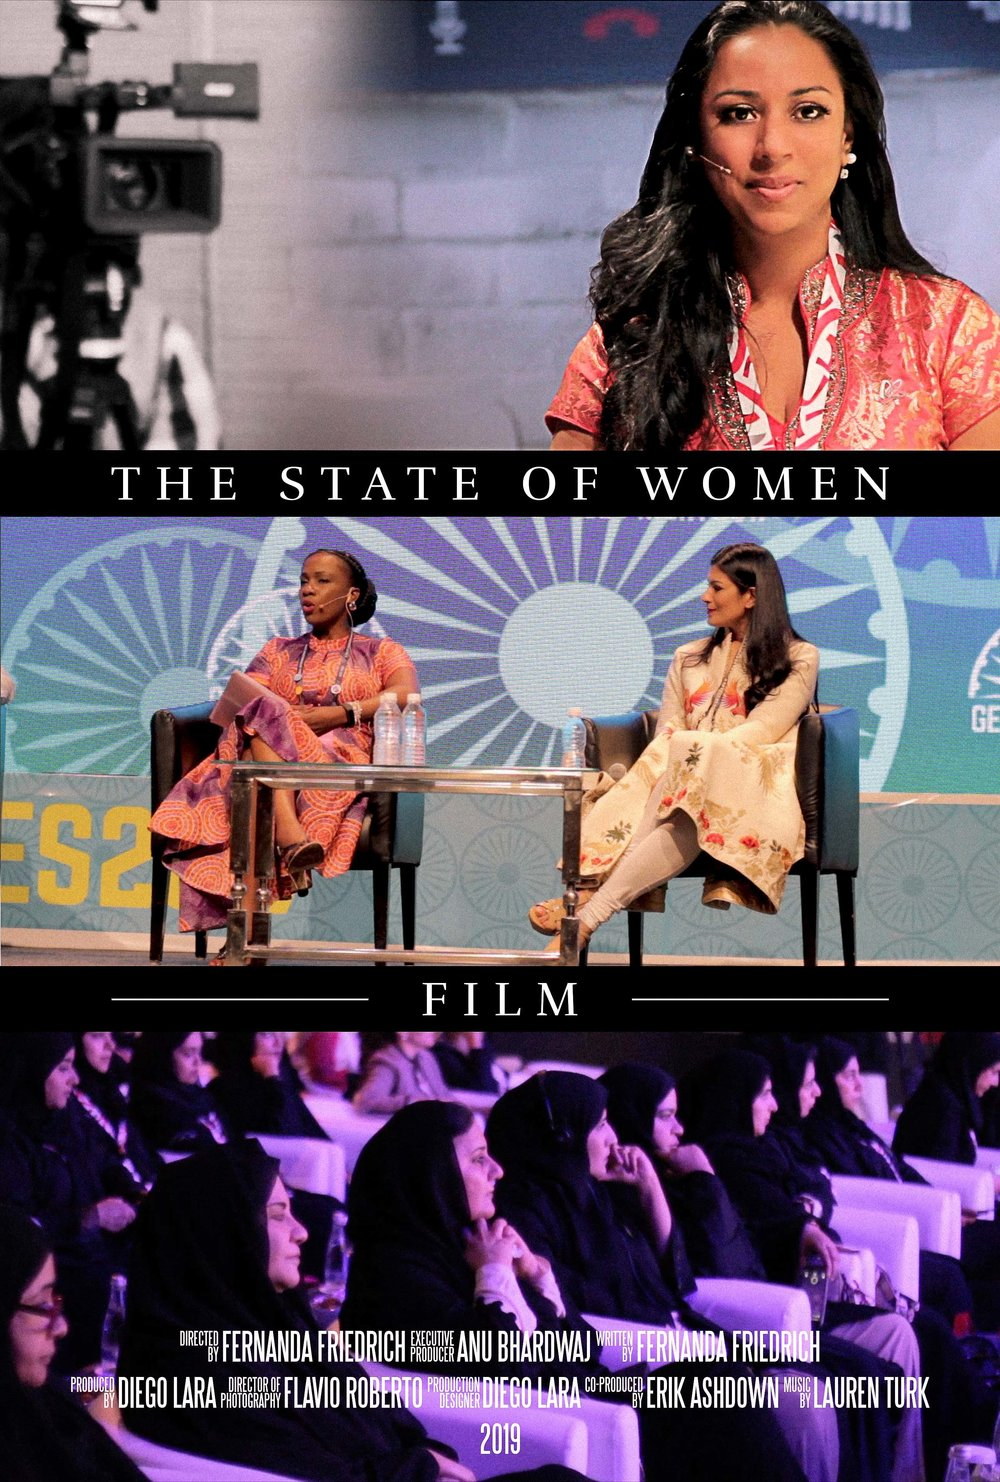 THE STATE OF WOMEN FILM POSTER.jpg